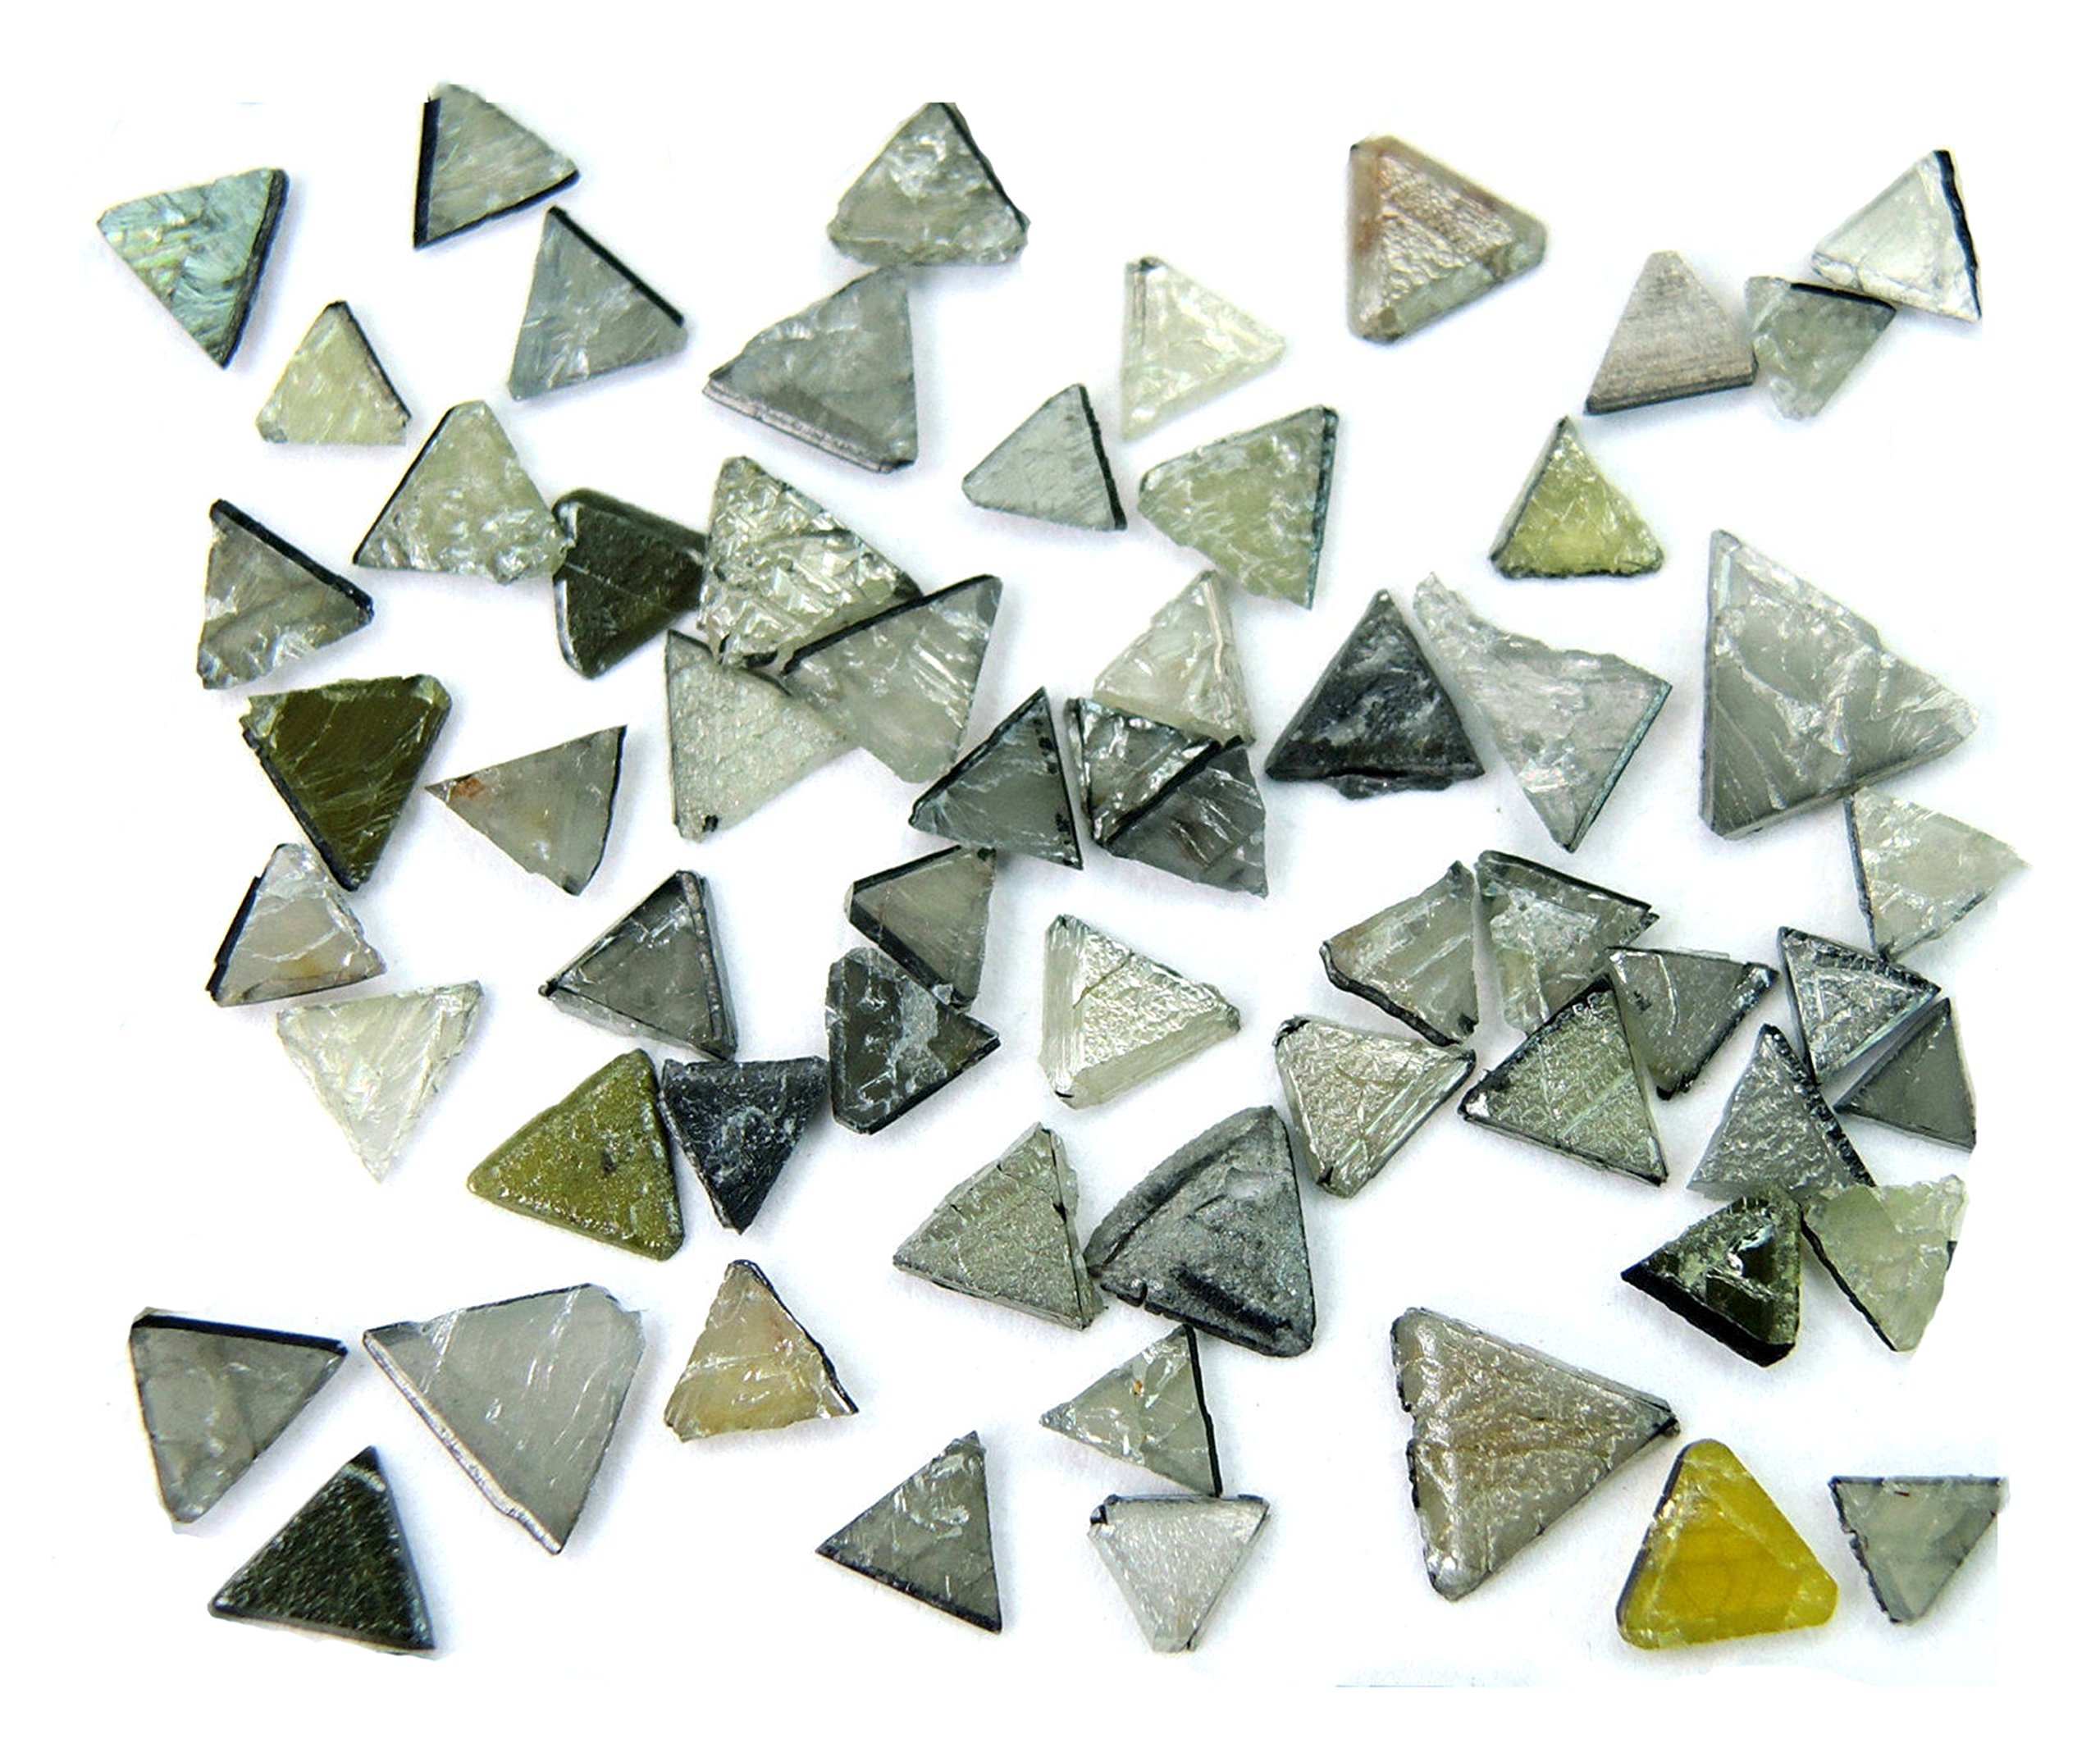 Natural loose Diamond Rough Triangle Flat Uncut Industrial Use Black Gray Color I3 Clarity 5.00 Ct lot Q26